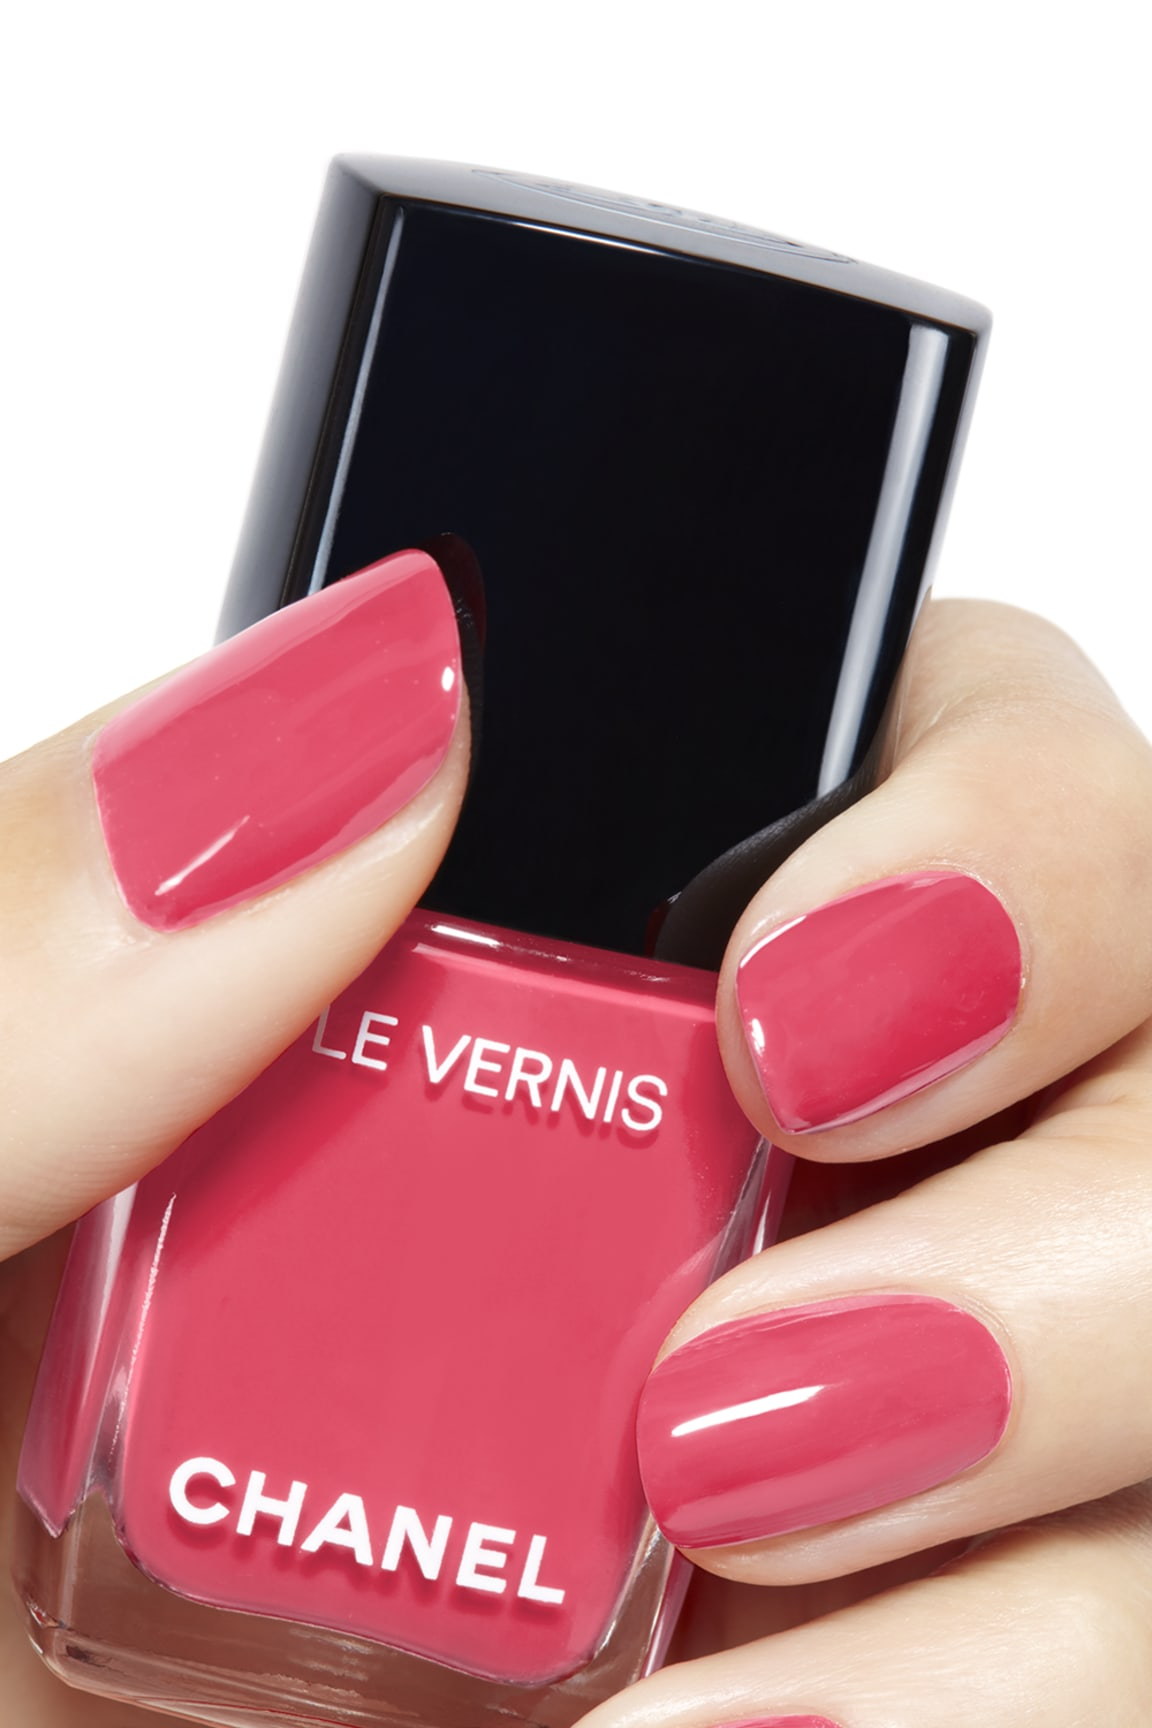 Application makeup visual 2 - LE VERNIS 524 - TURBAN